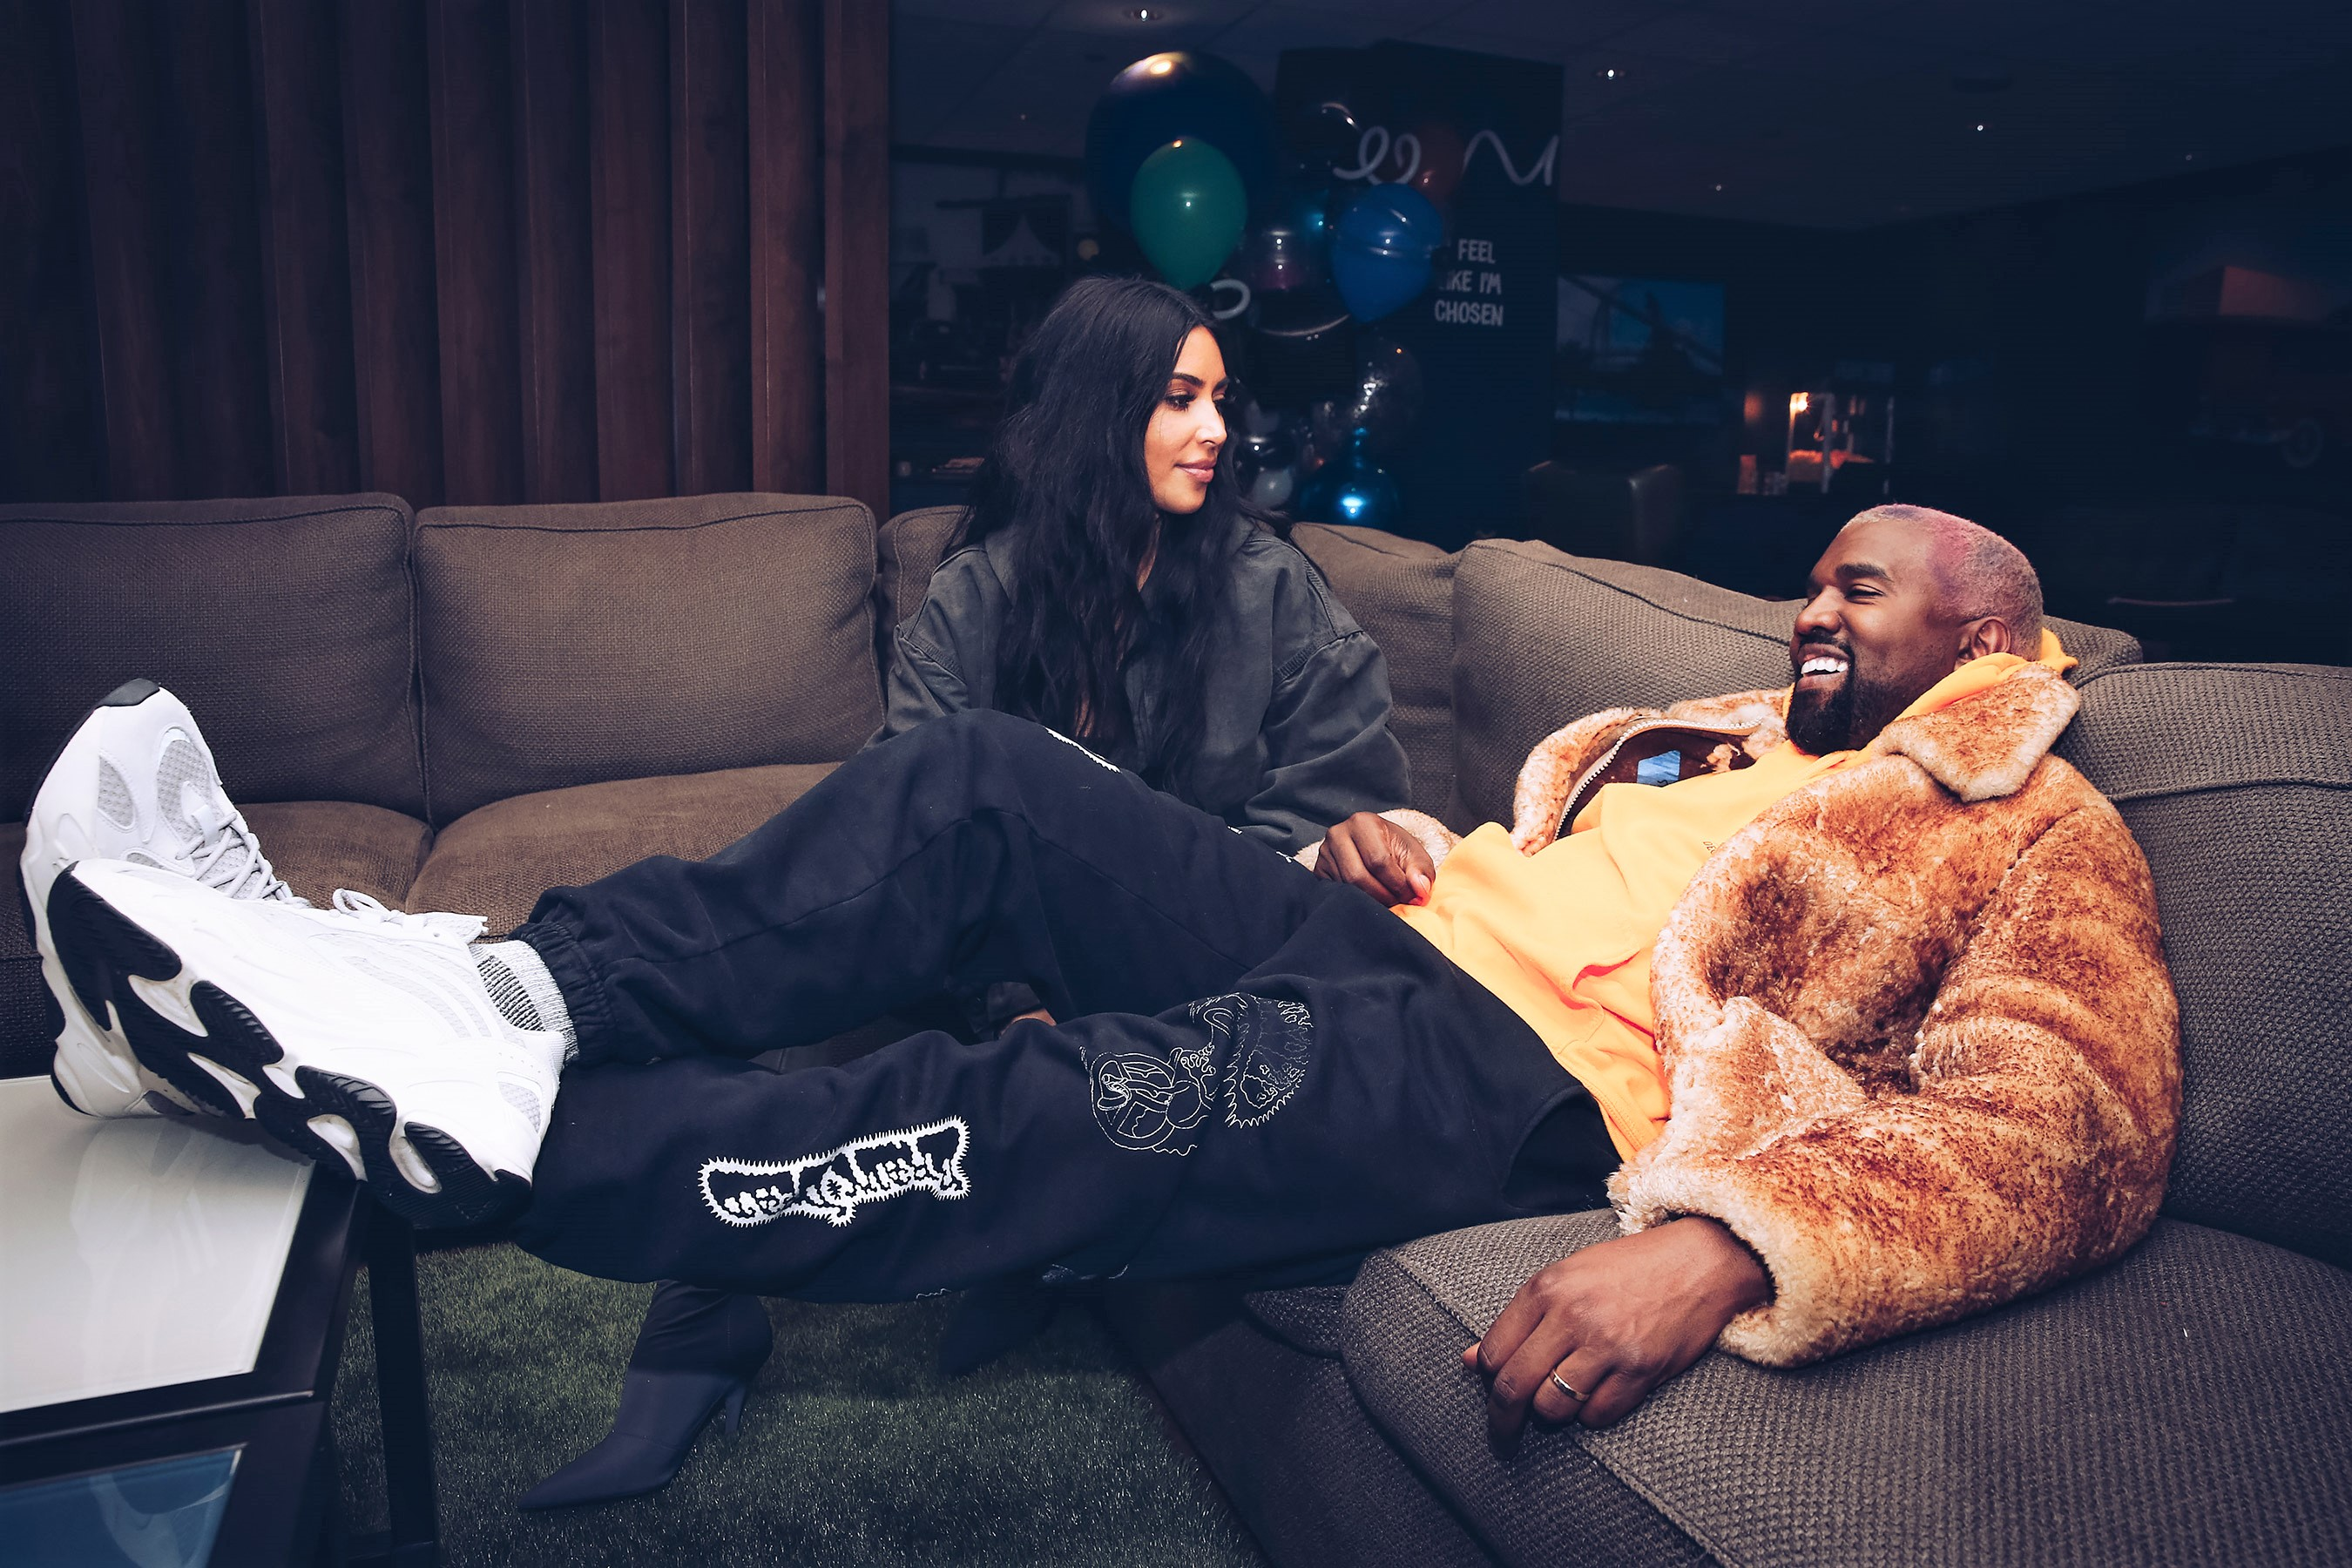 Kim Kardashian West and Kanye West Sitting on Couch Laughing